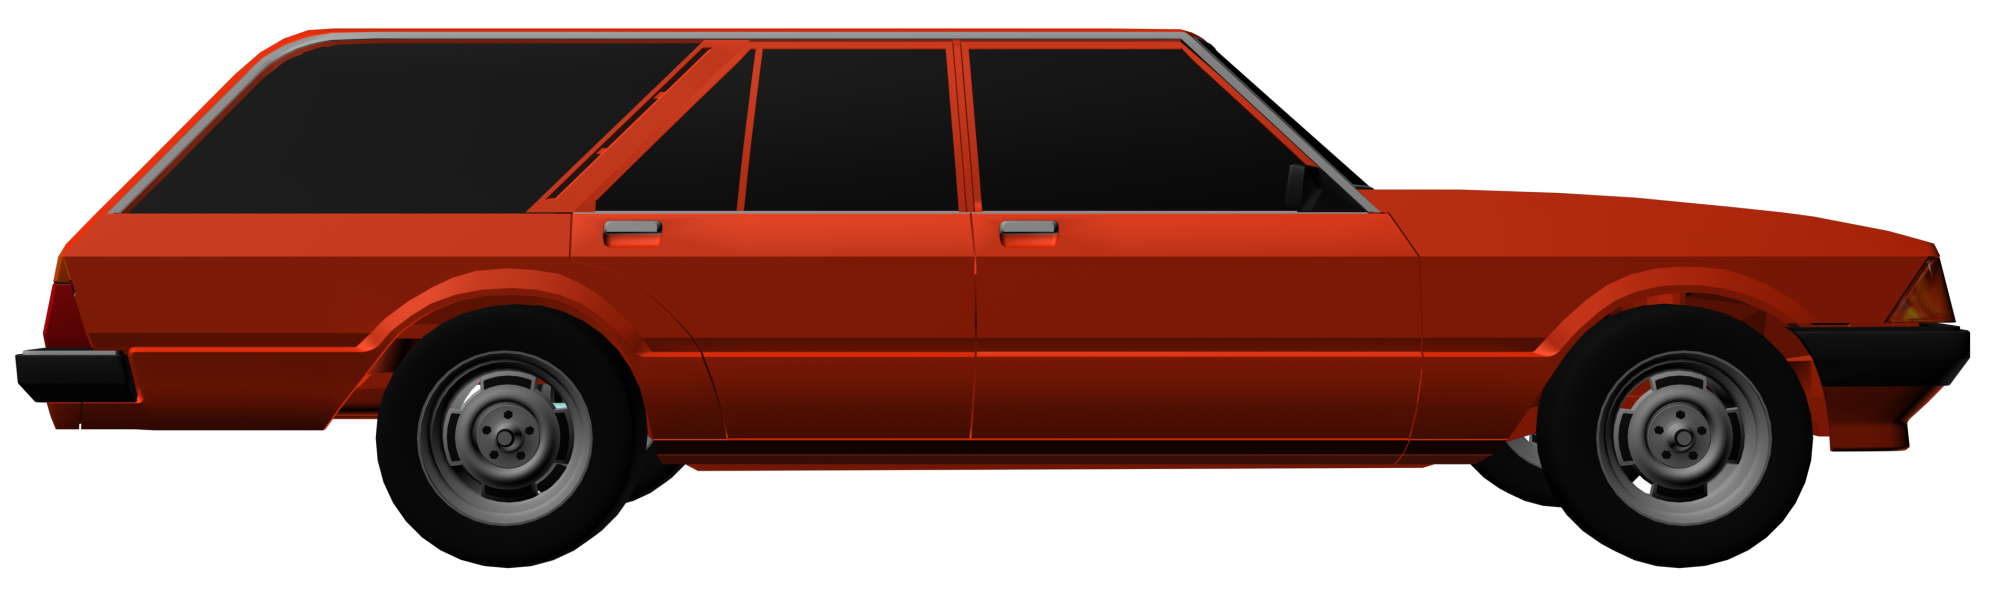 File_94-XD_Wagon_Render_3.png